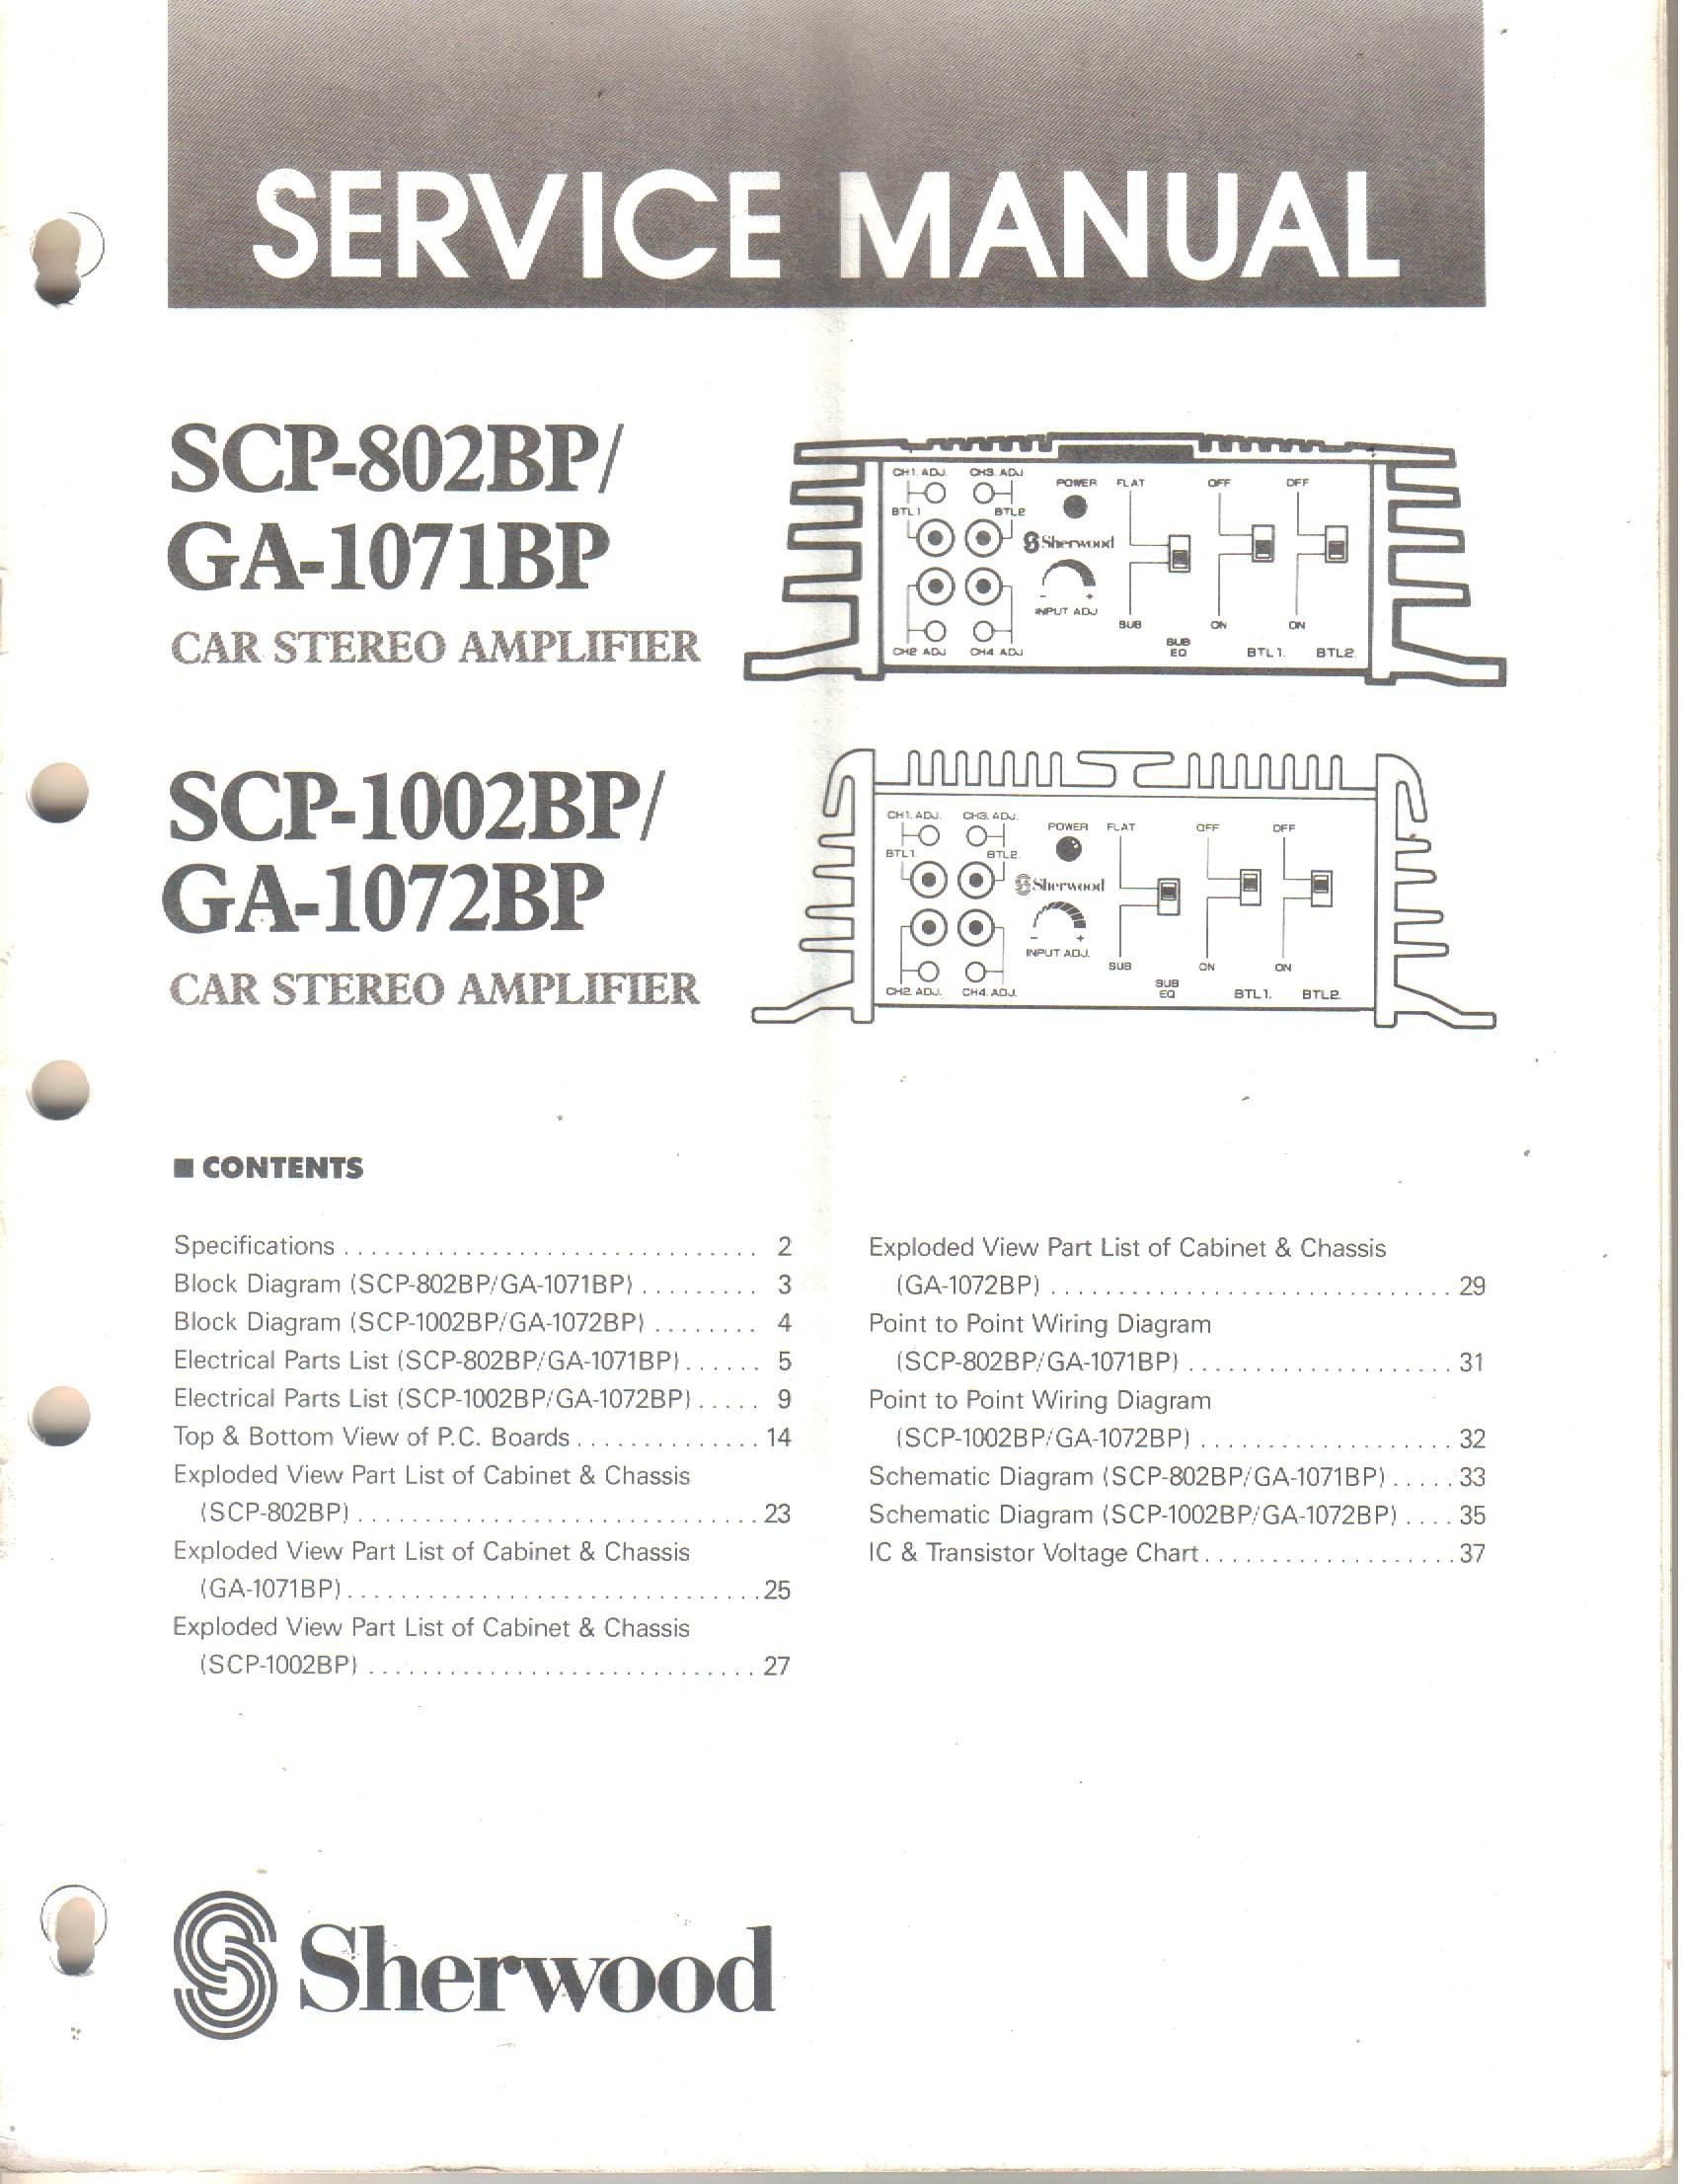 Sherwood Scp 802bp Ga 1071bp 1002bp 1072bp Car Stereo Schematic Wiring Diagram Page 81 Amplifier Service Manual Not Stated Books